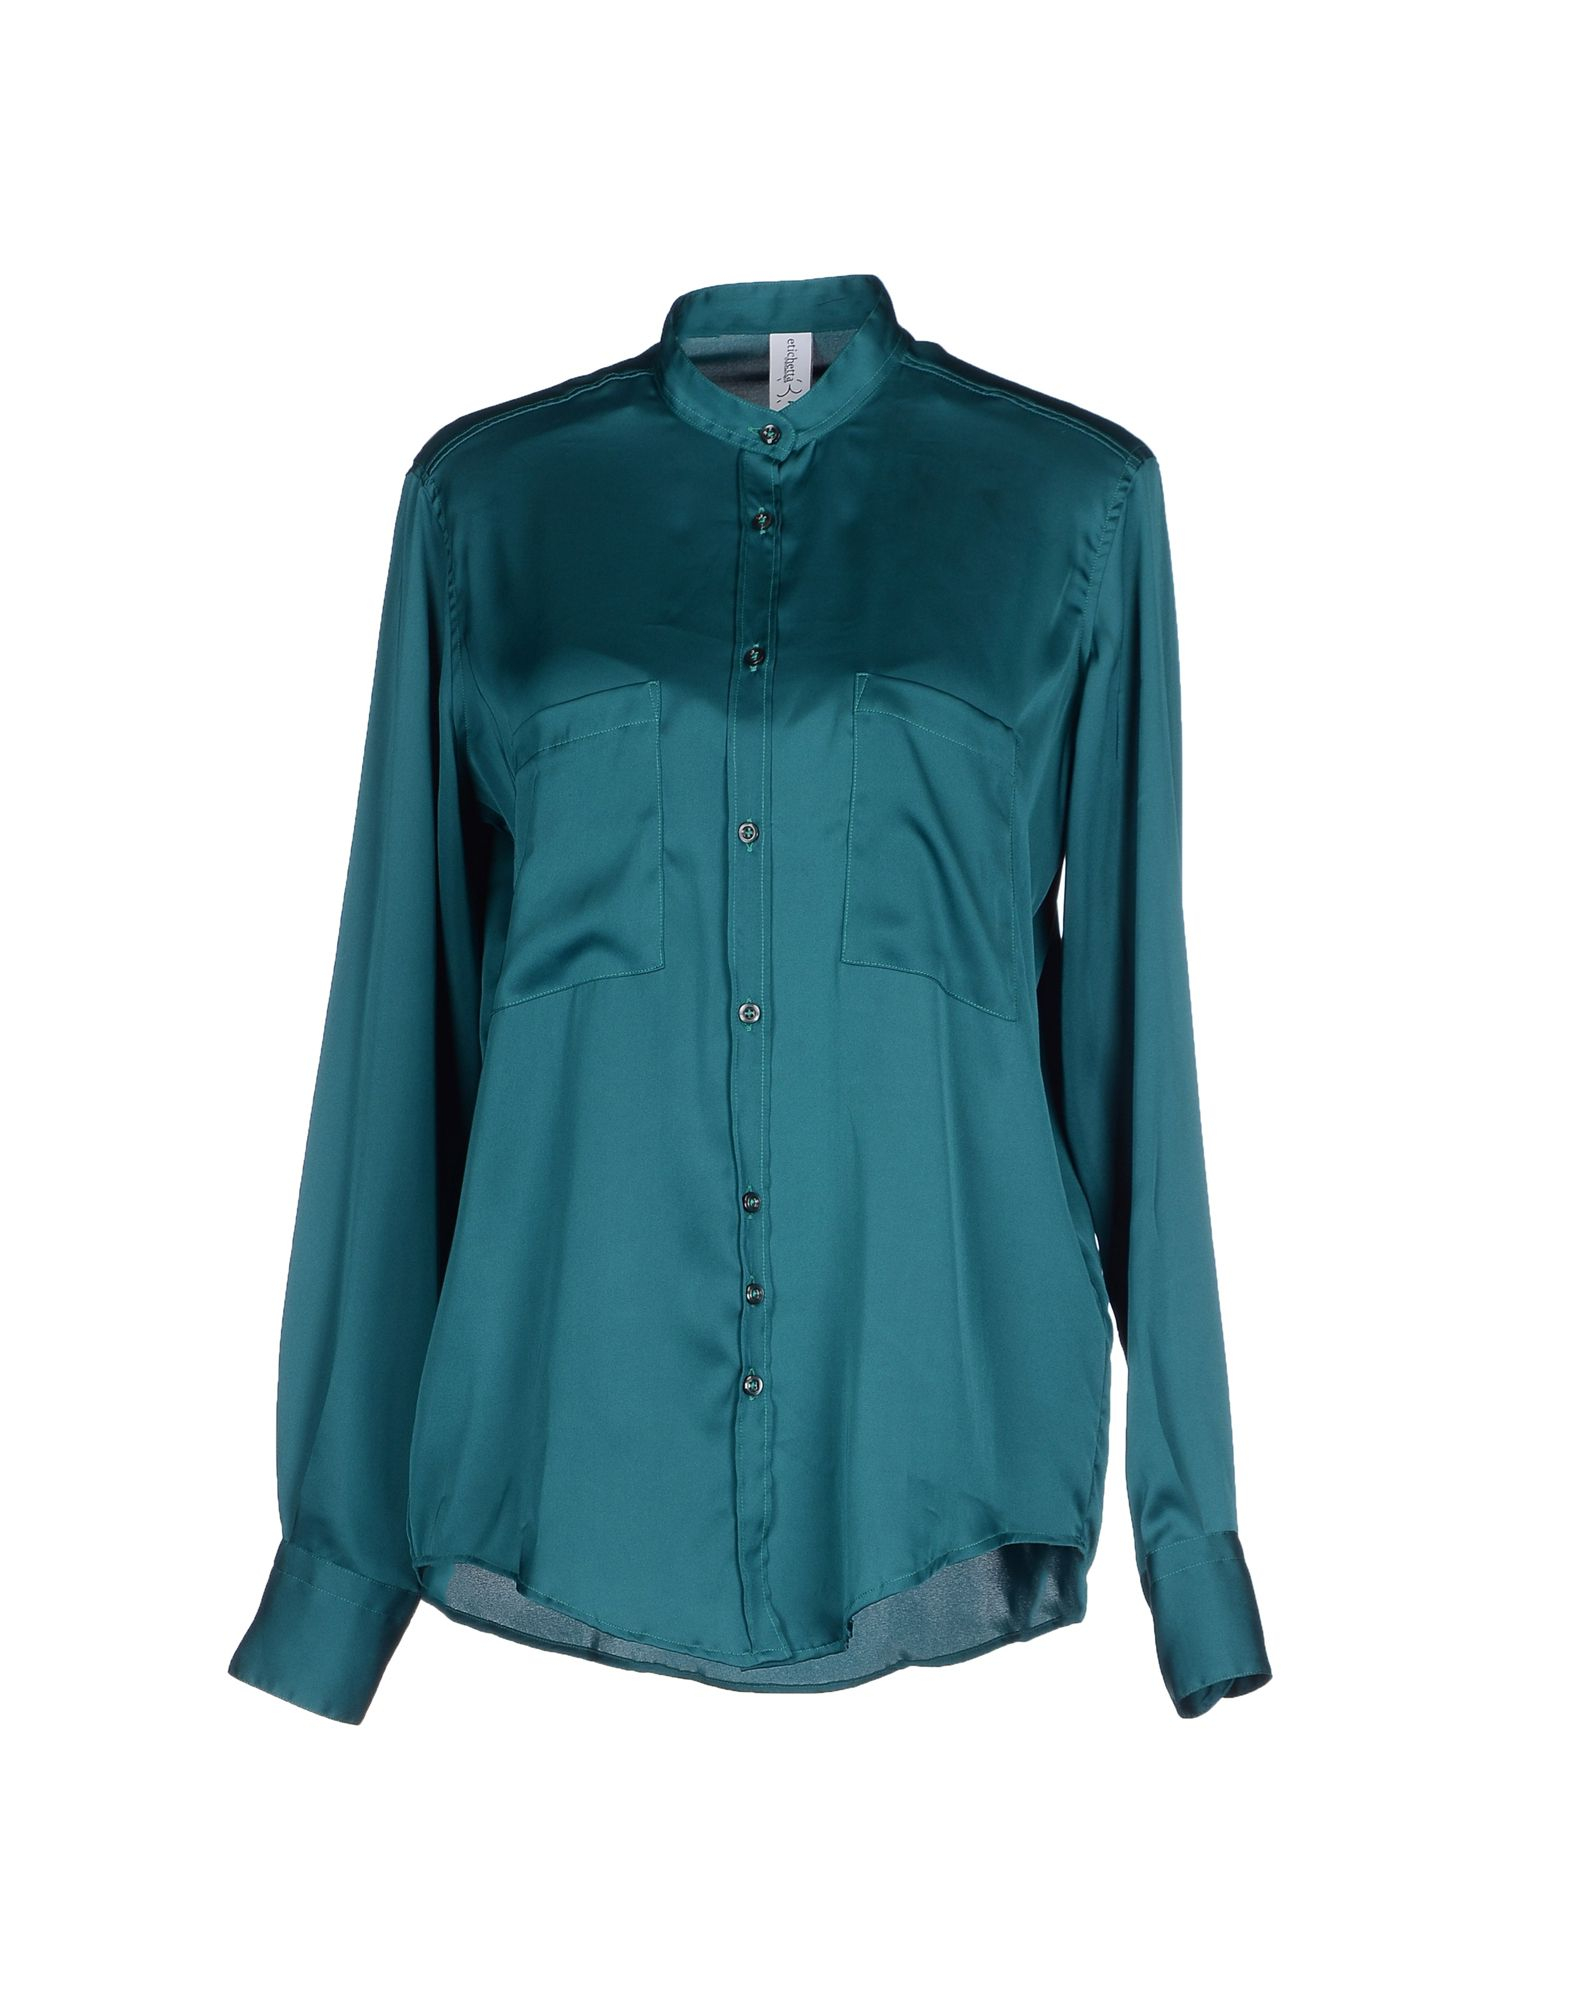 Etichetta 35 shirt in green emerald green lyst Emerald green mens dress shirt